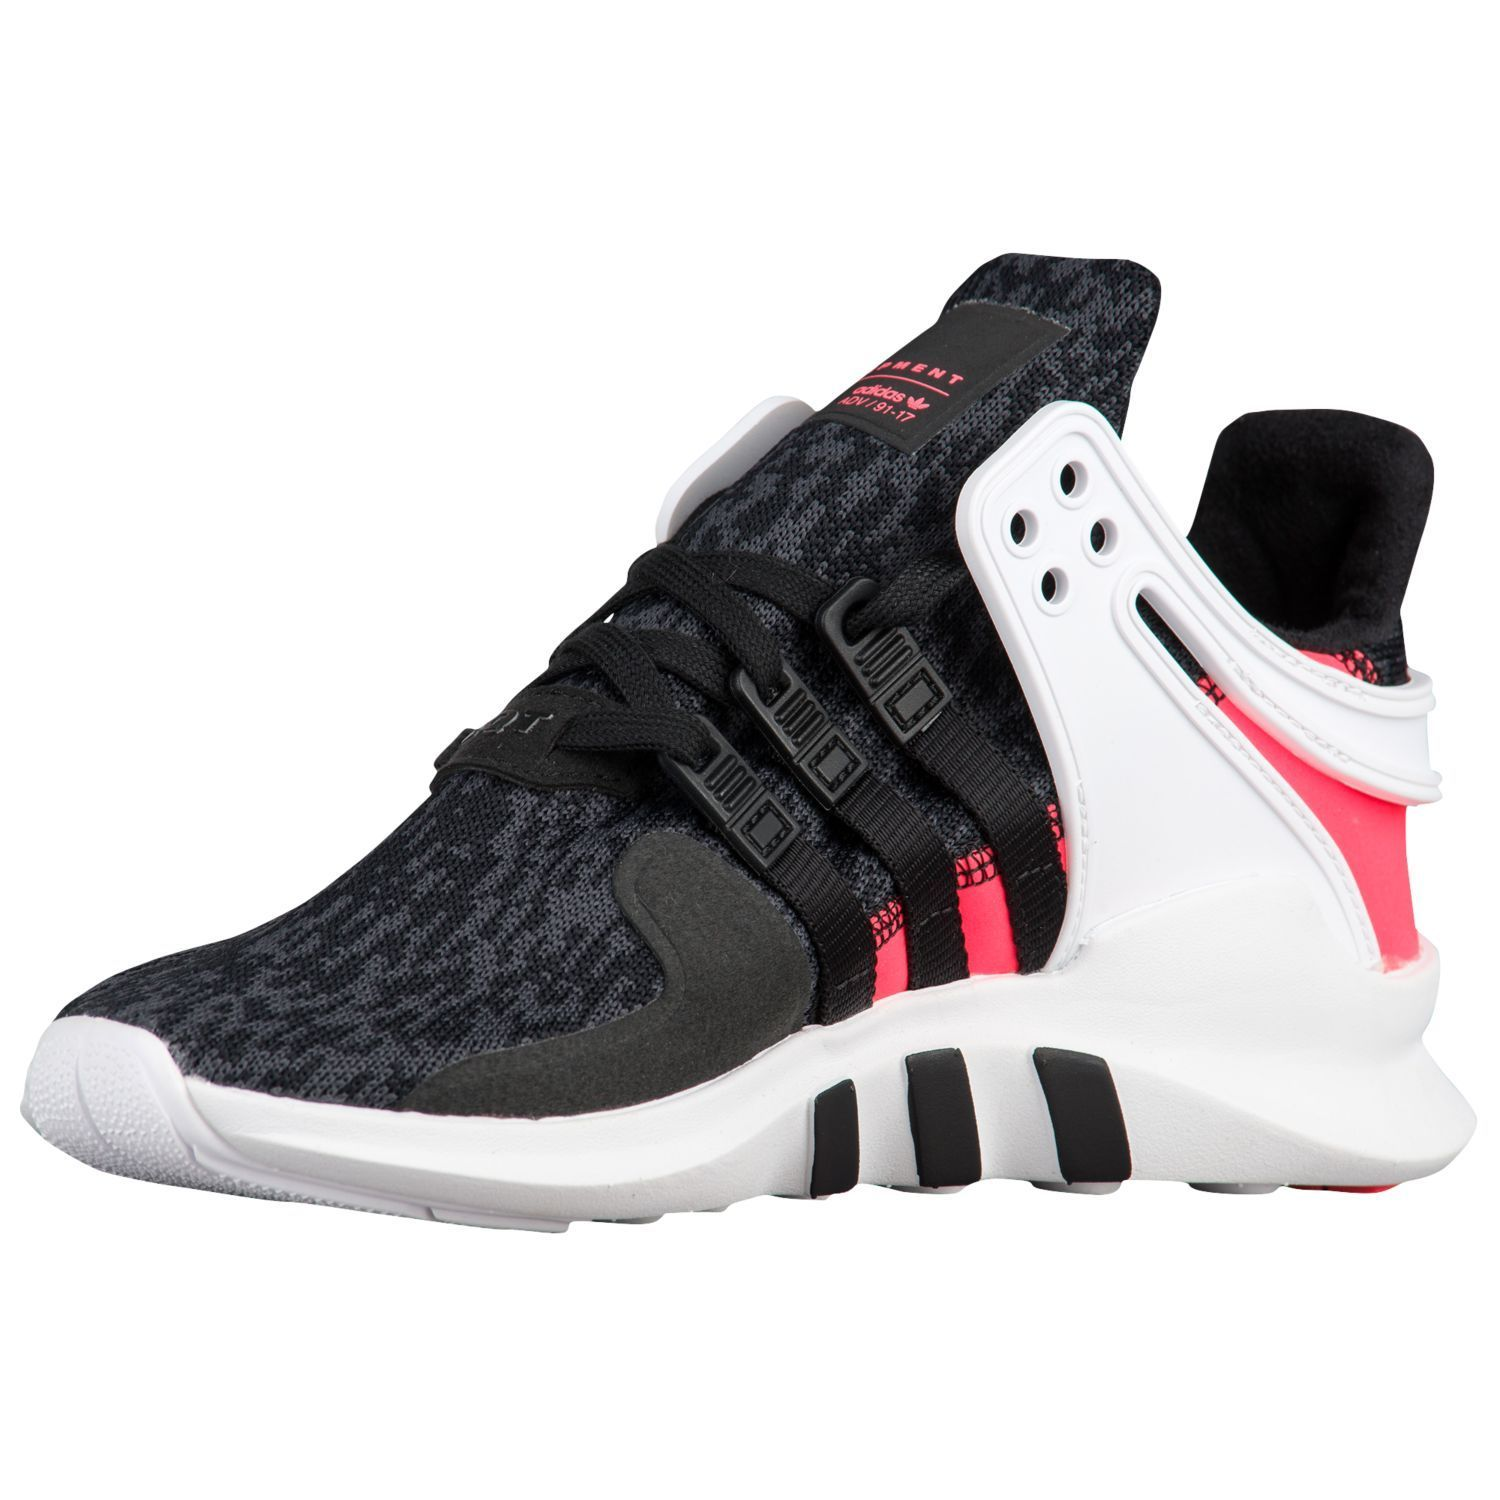 ADIDAS EQT SUPPORT ADV GS BLACK TURBO  22-25cm  送料無料